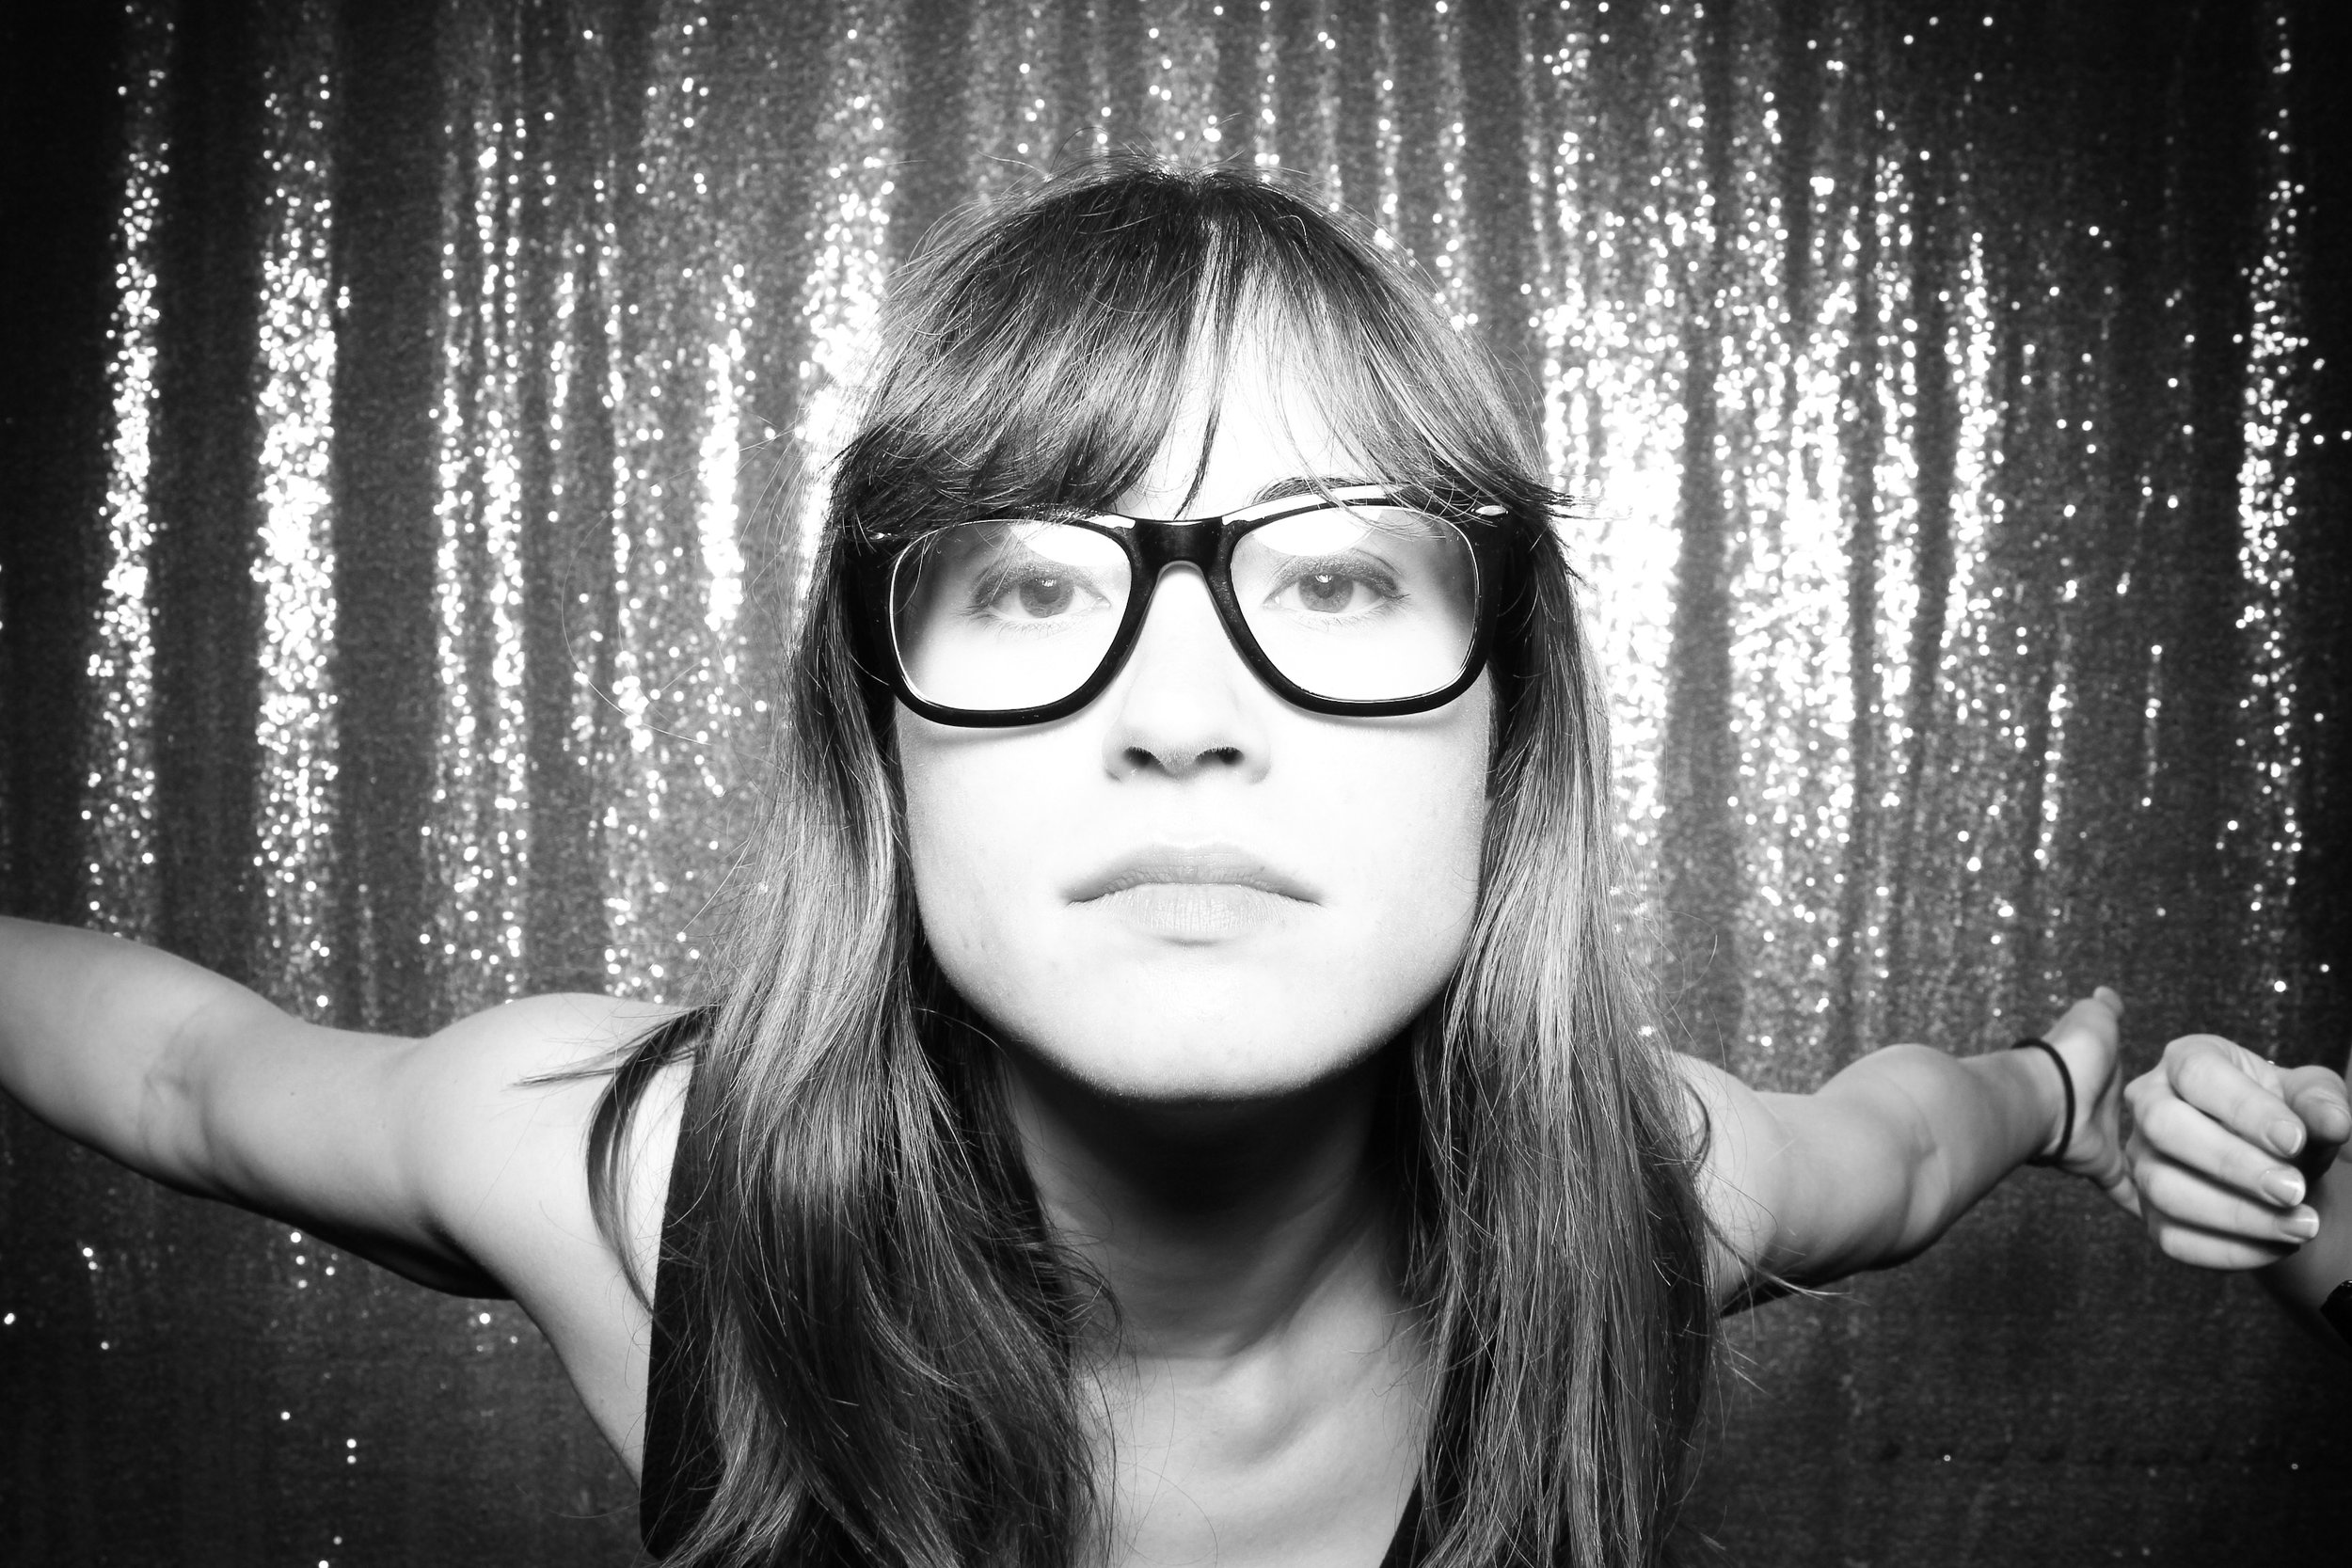 Chicago_Vintage_Wedding_Photobooth_Wisconsin_15.jpg